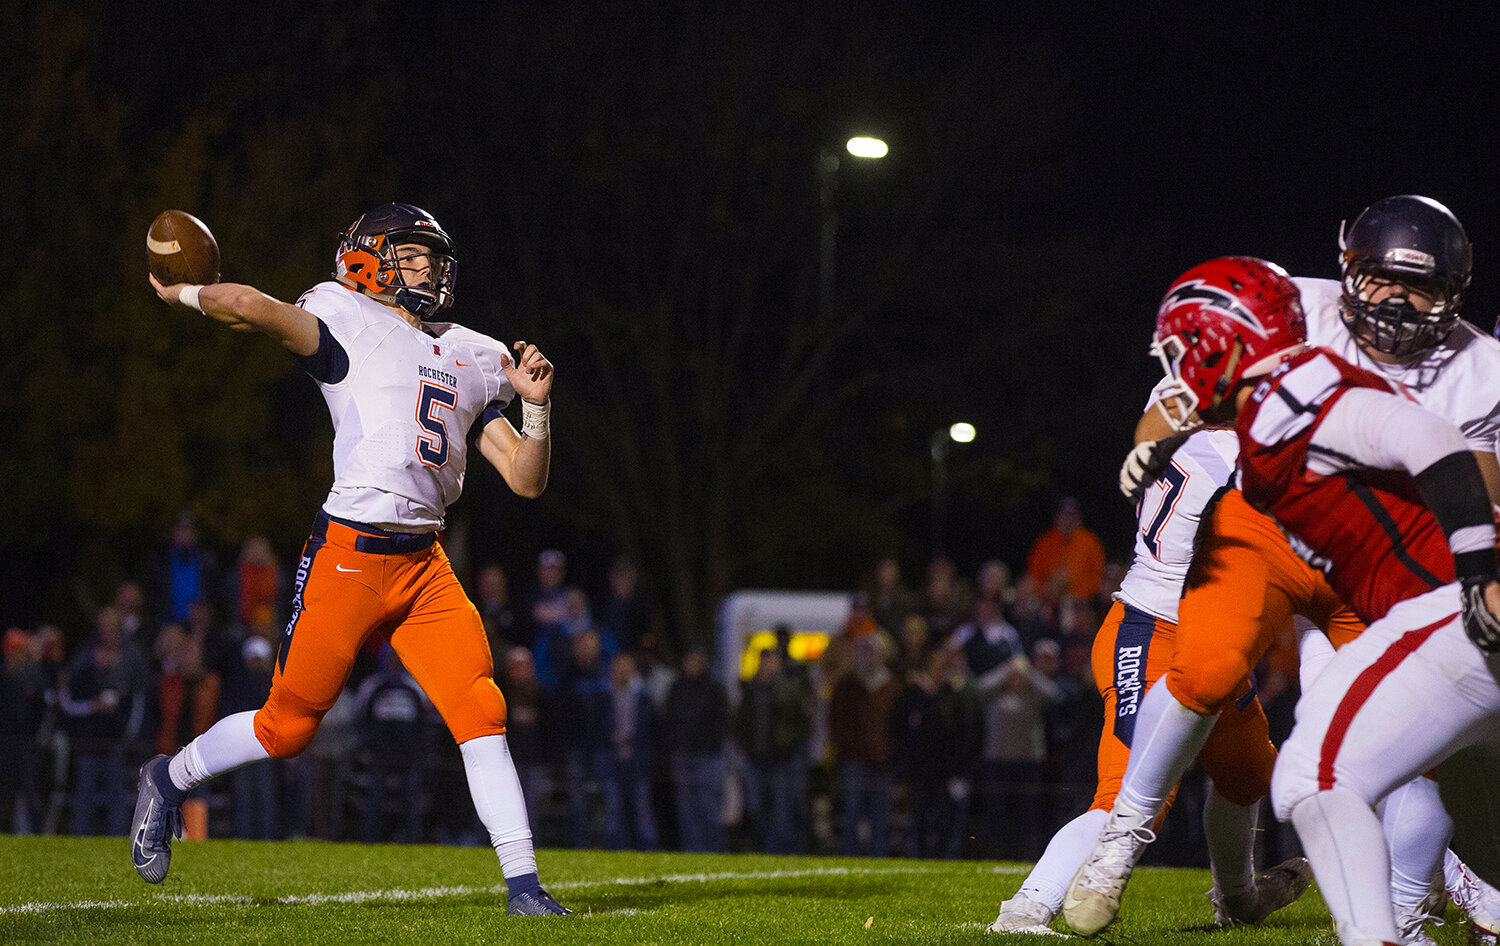 Rochester quarterback Clay Bruno (5)  fires a pass downfield at Glenwood High School Friday, Oct. 25, 2019. [Ted Schurter/The State Journal-Register]